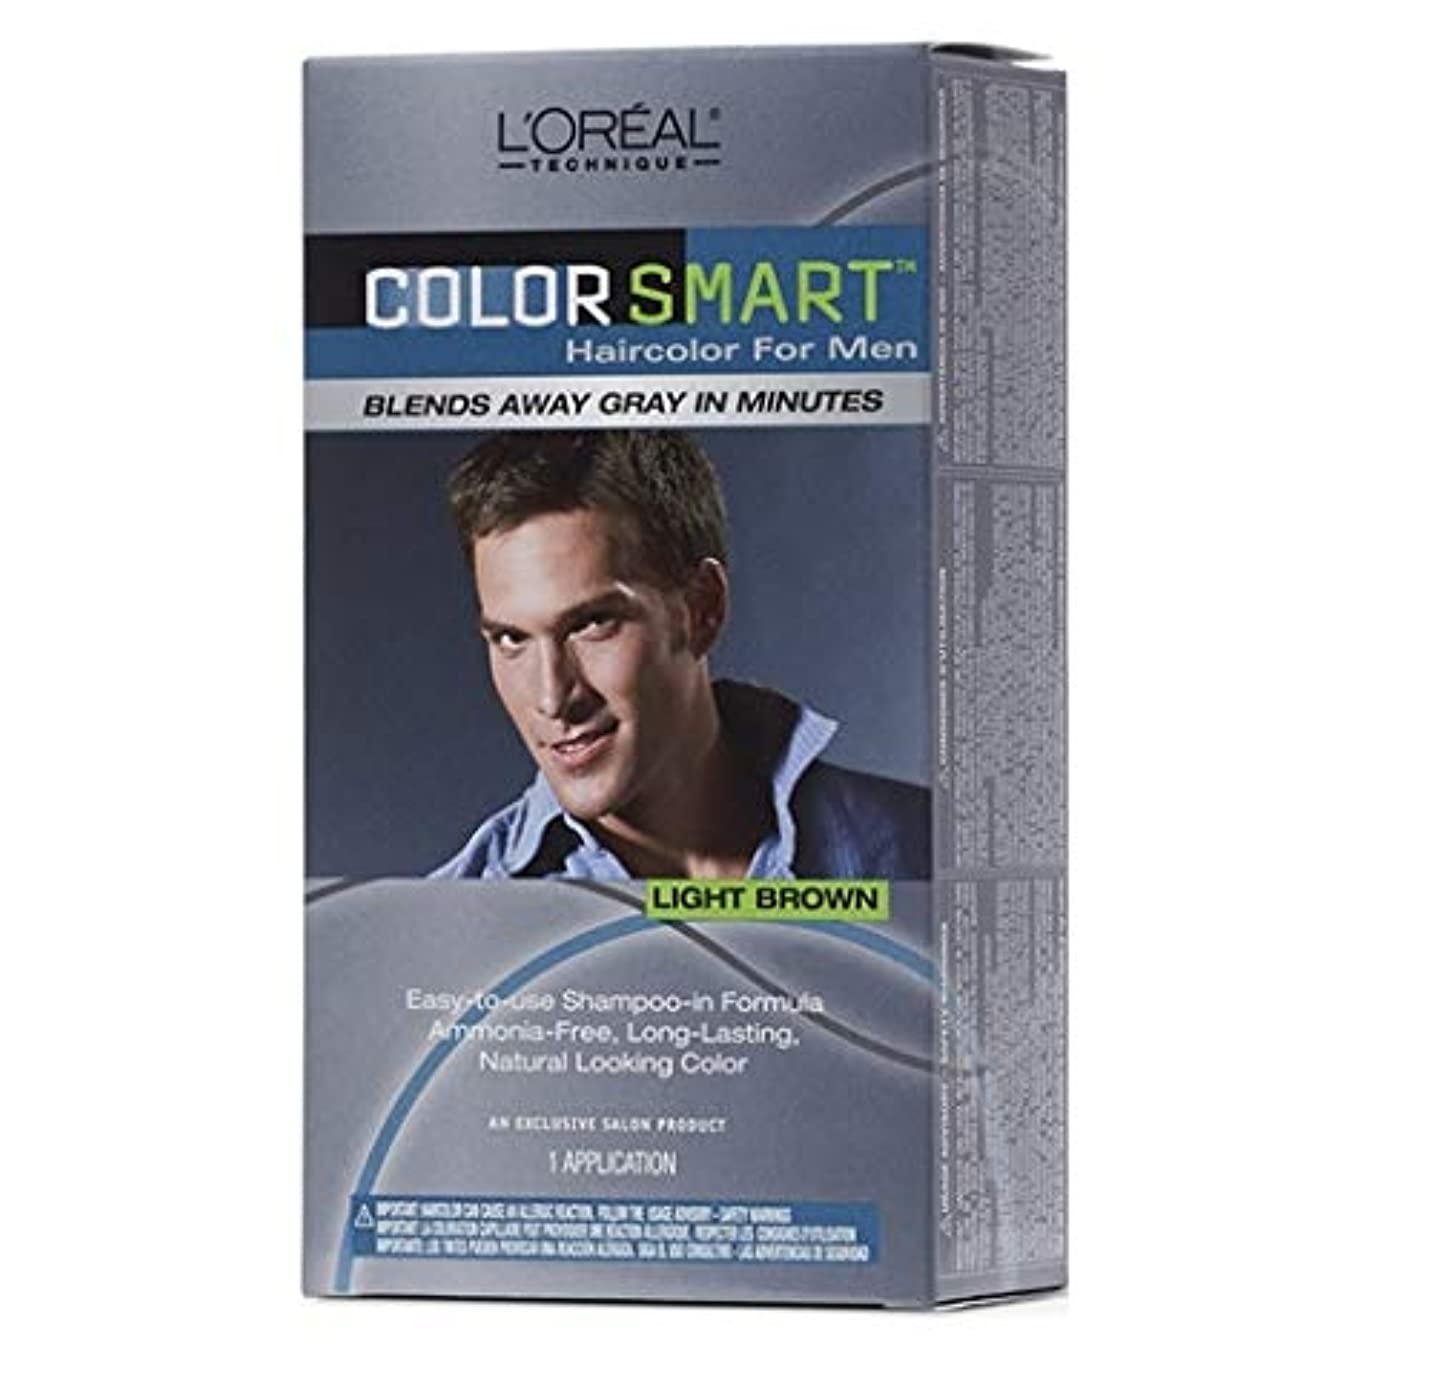 インタビュー抵当料理L'Oreal Technique - Color Smart for Men - Light Brown KIT